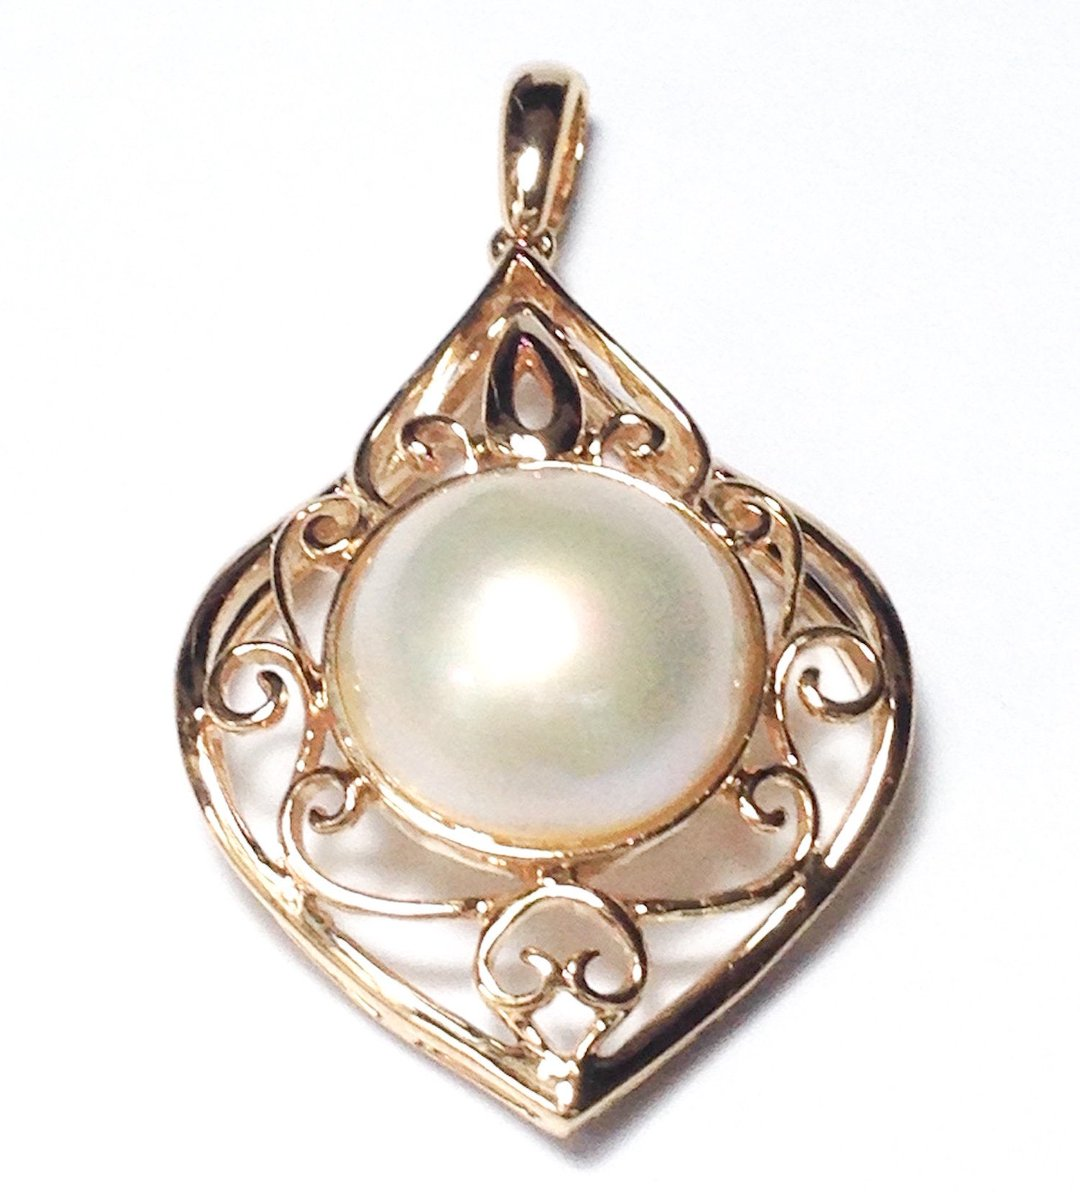 Excited to share the latest addition to my #etsy shop: Vintage 14K or 18K Yellow Gold handmade Vintage Style AAA+ Luster Gorgeous 13 - 14mm Natural South Sea White Half Round Mabe Pearl Pendant  #jewelry #necklace #anniversary #yes #gold #girls #